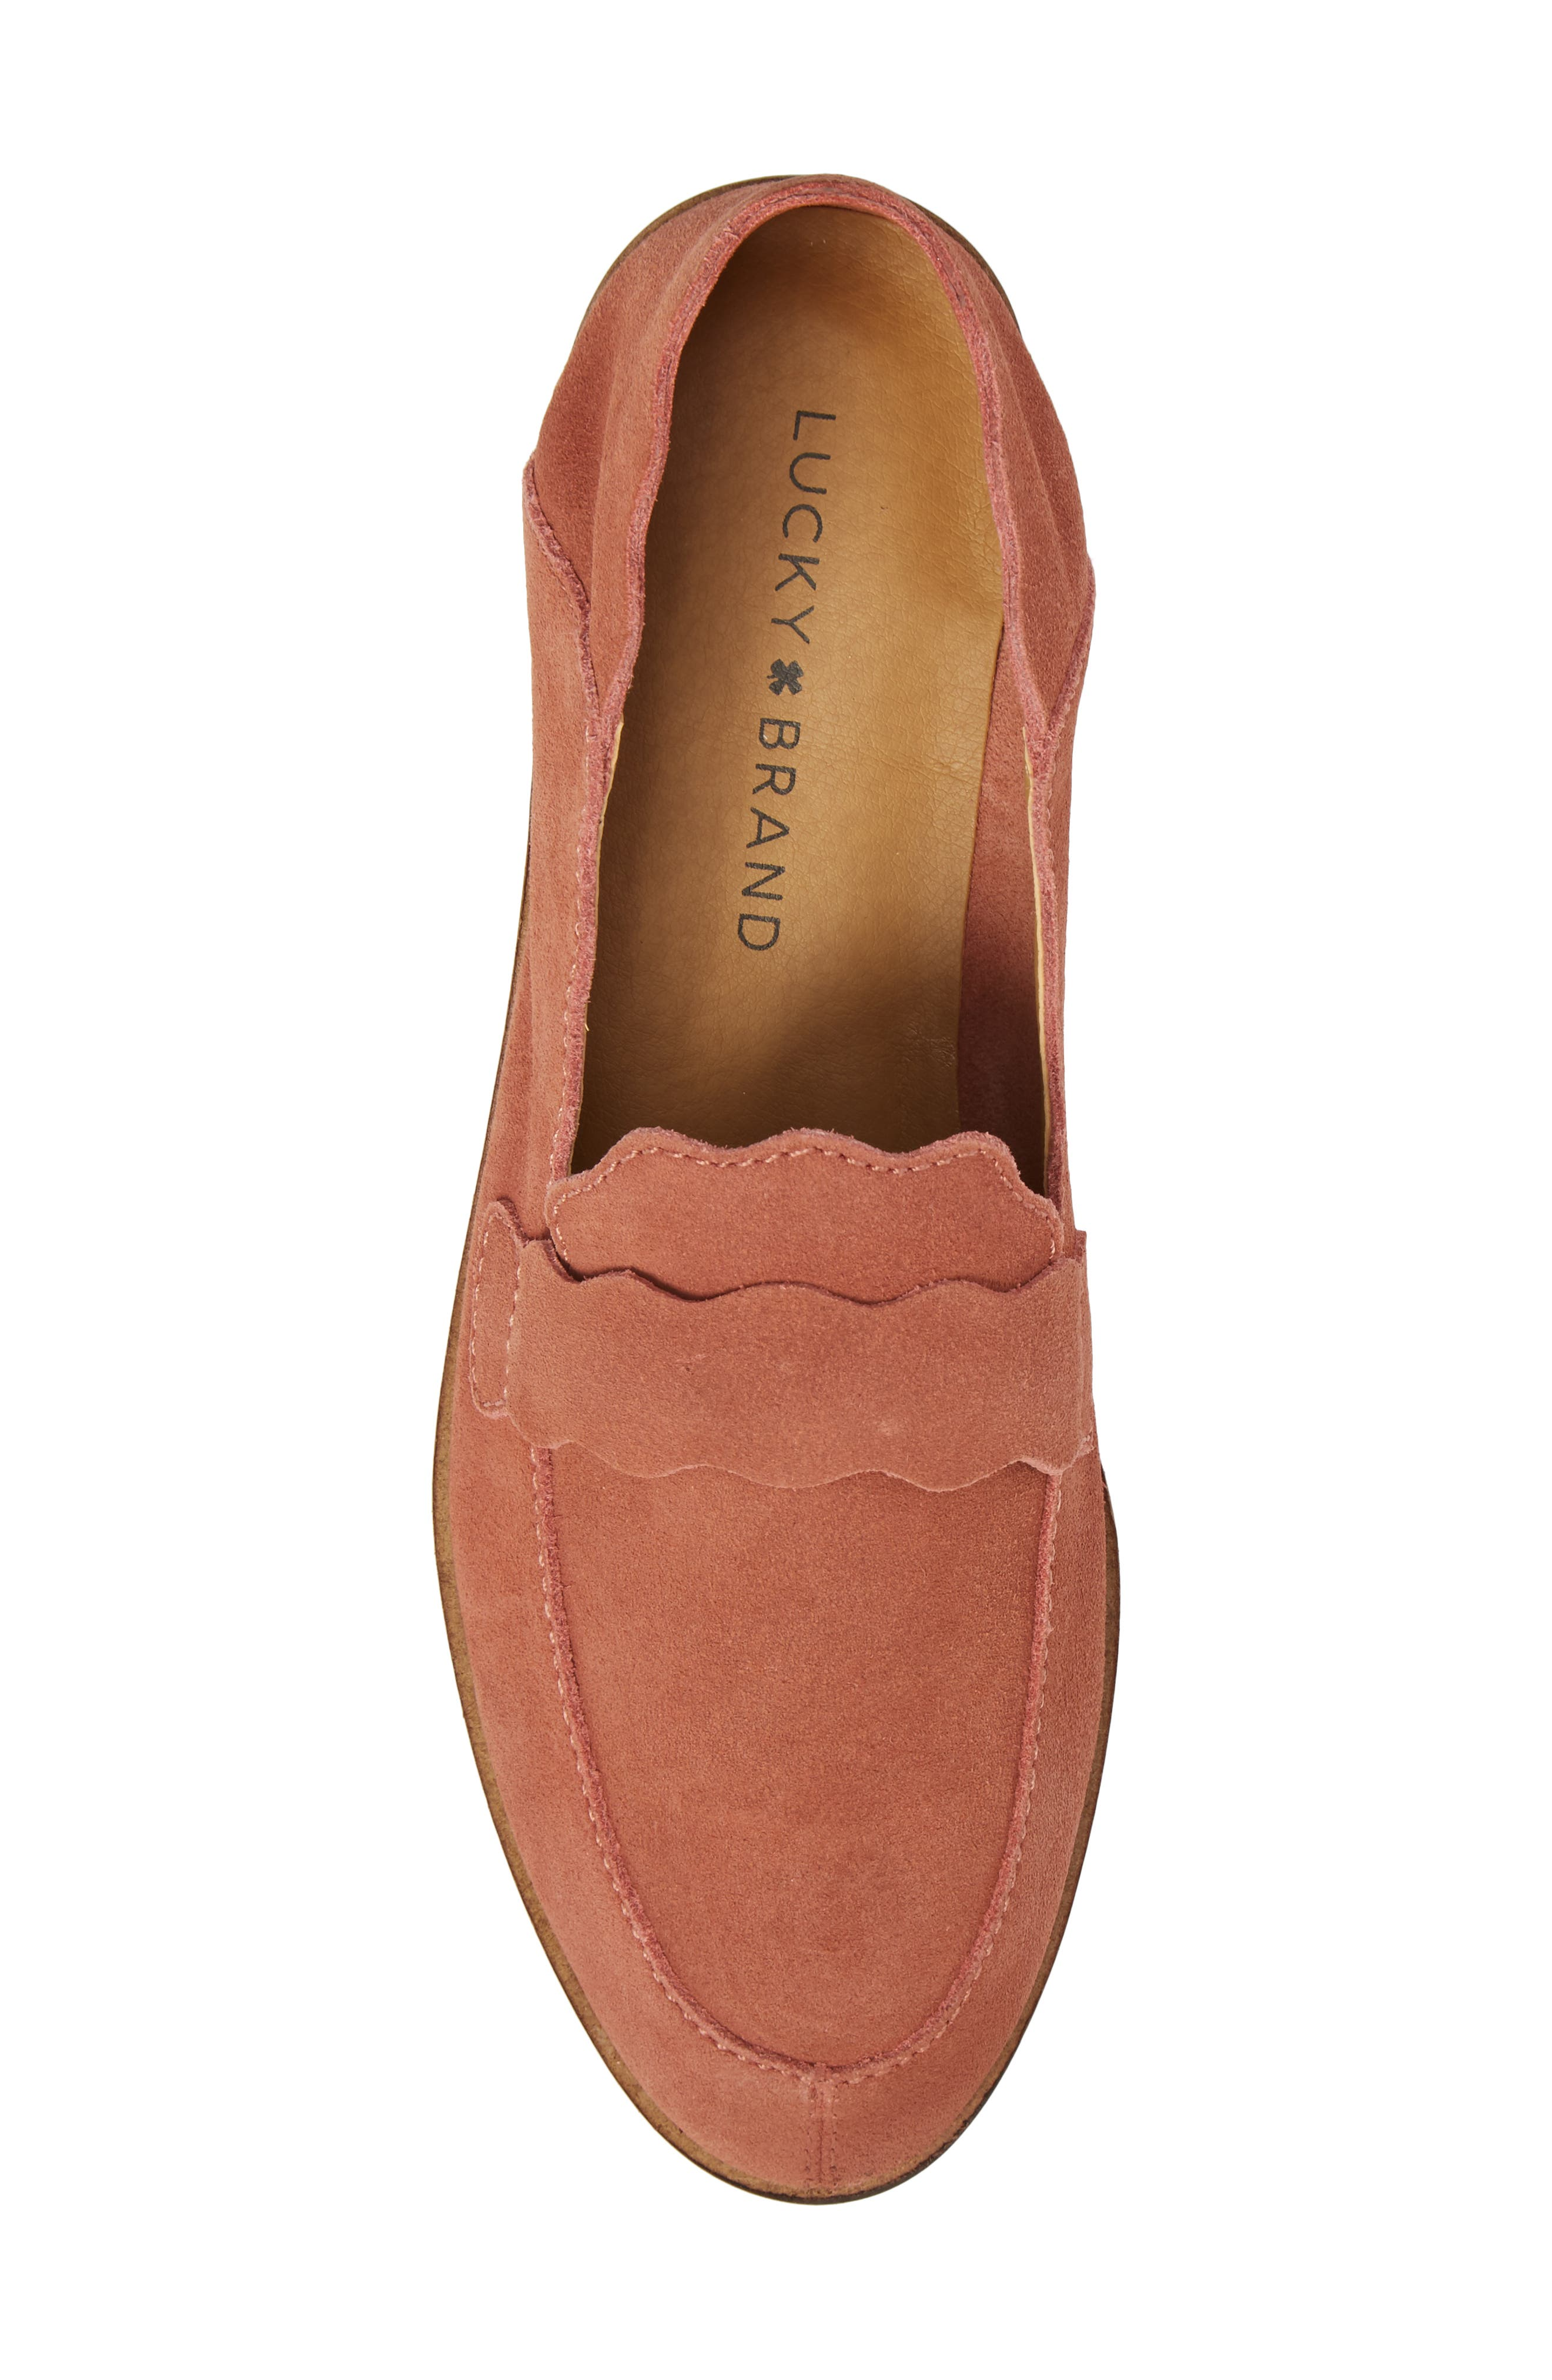 Callister Loafer,                             Alternate thumbnail 5, color,                             Canyon Rose Suede